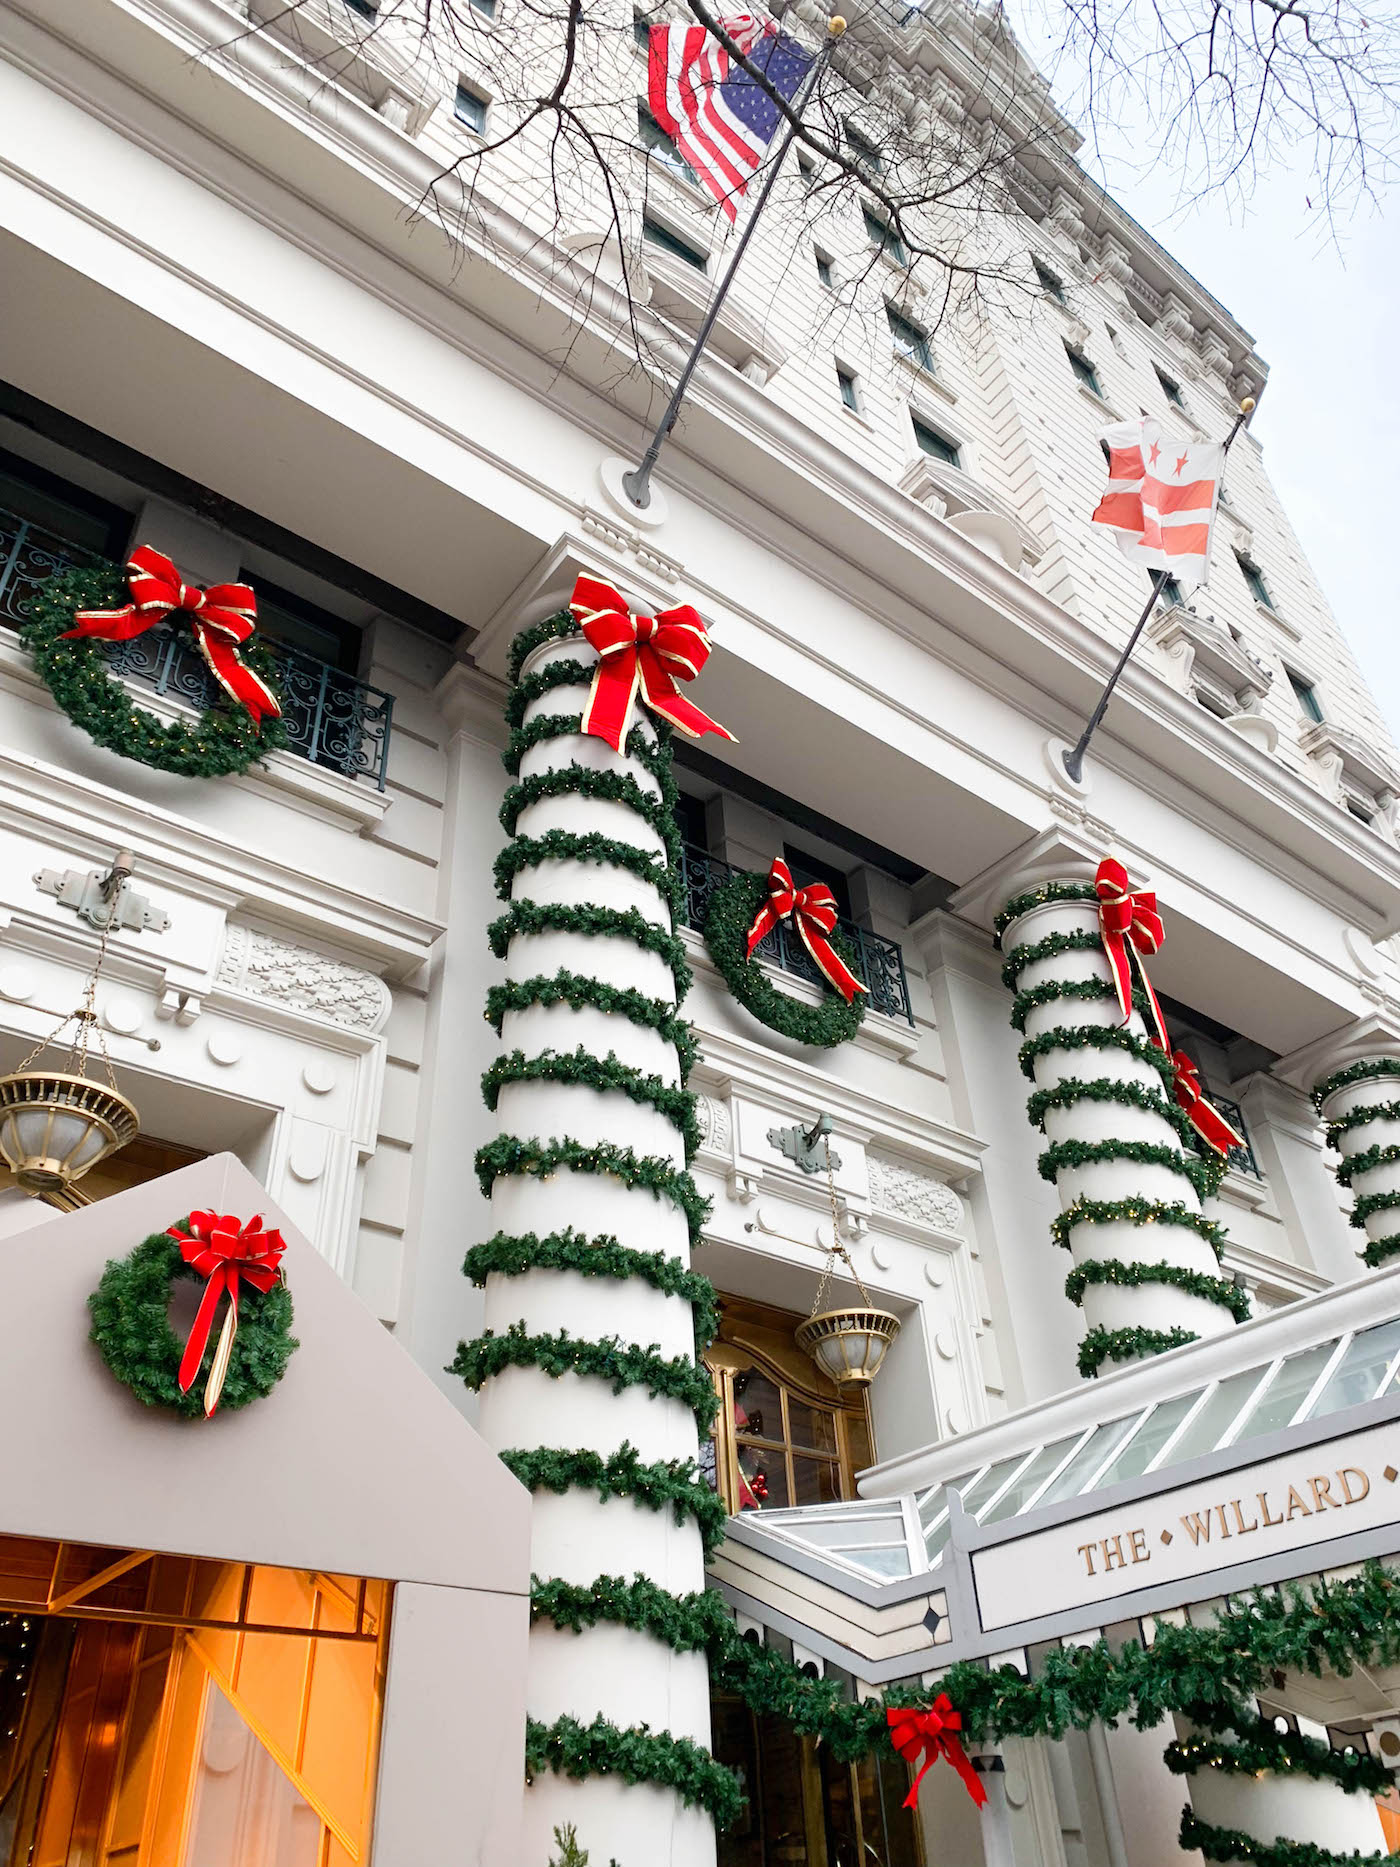 willard hotel christmas decorations